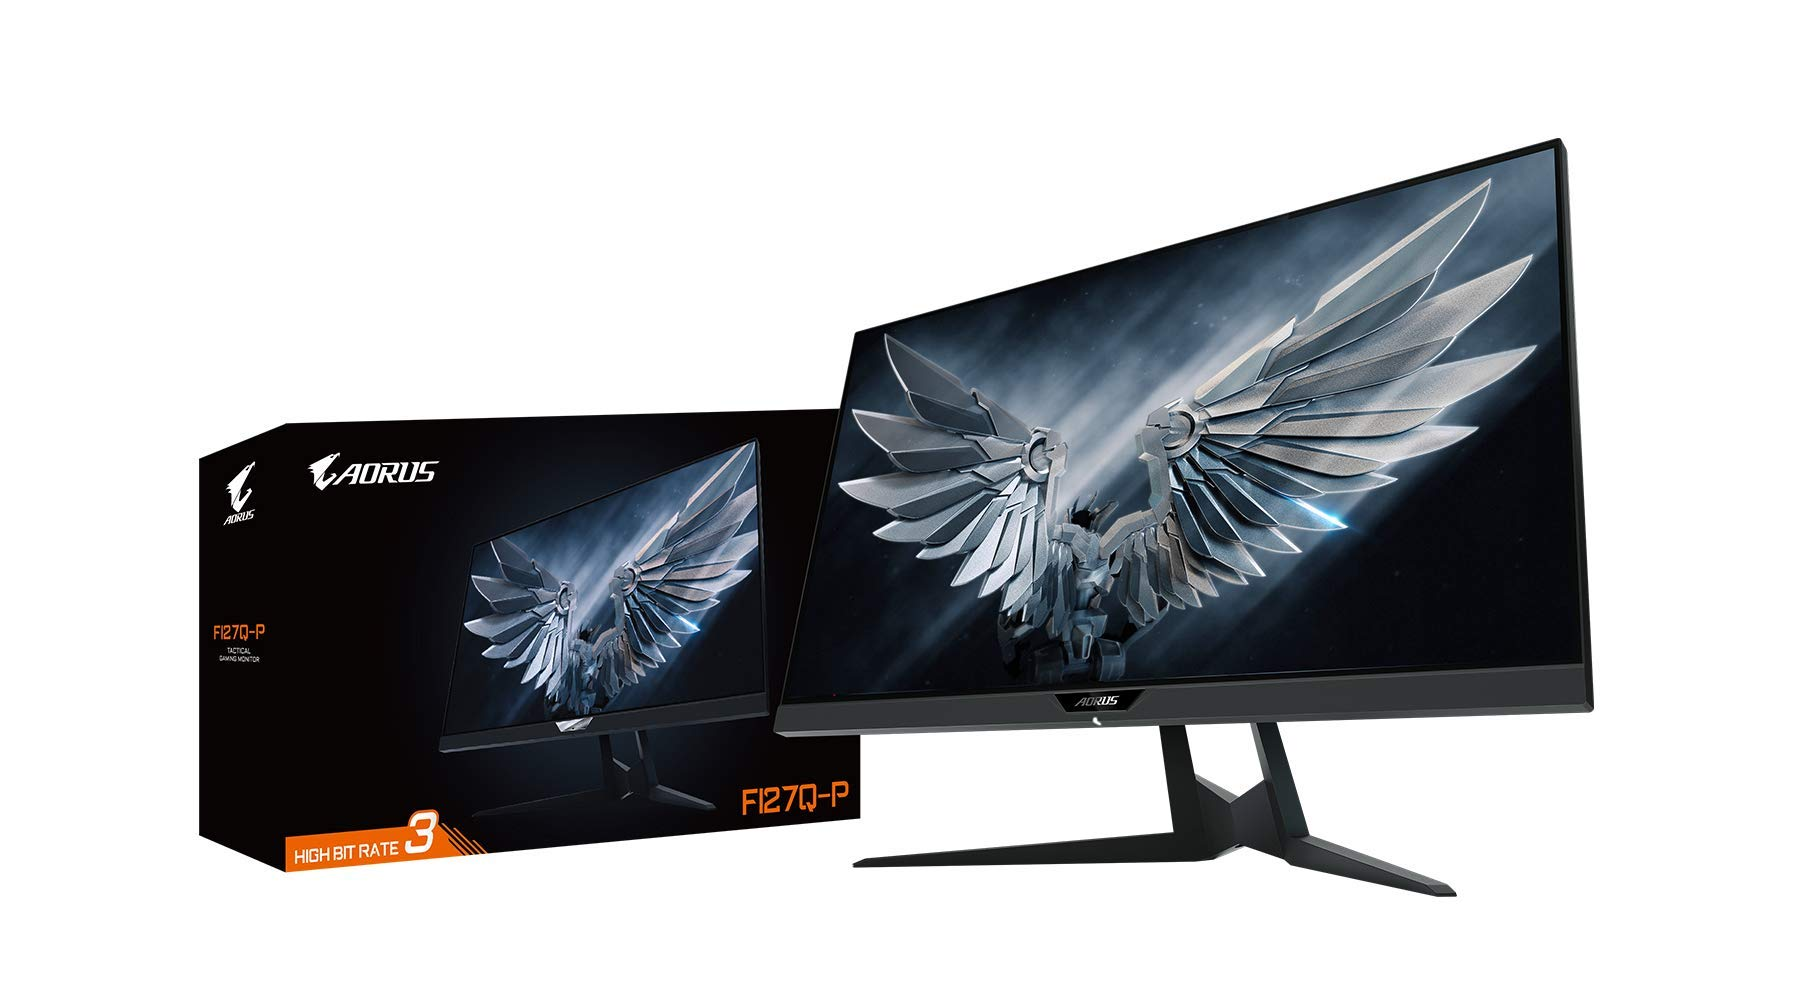 """Gigabyte FI27Q-P 27"""" Frameless Gaming Monitor, QHD 1440p, 95% DCI-P3 Color Accurate IPS Panel, 1ms 165 Hz, HDR, G-SYNC Compatible and FreeSync Premium, Height/Tilt/Rotation Adjustable, VESA"""